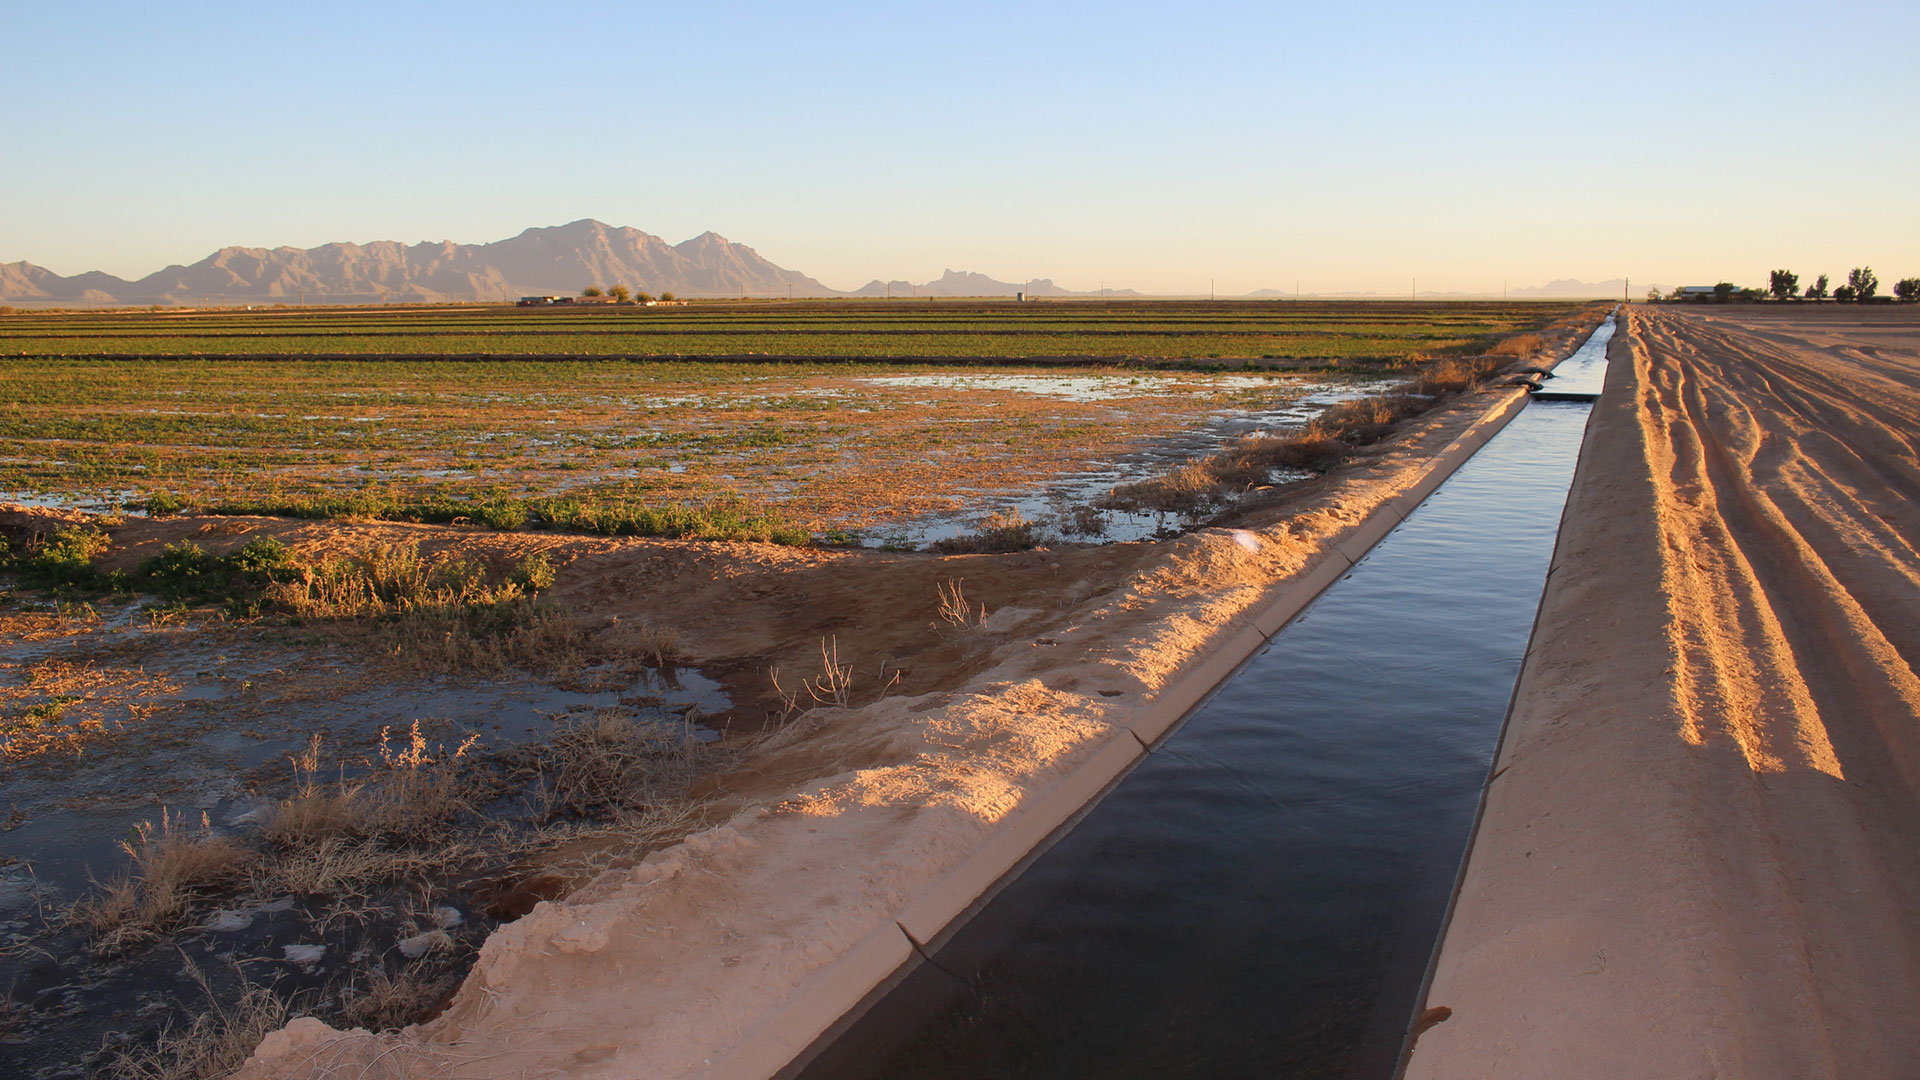 An irrigation canal carries Colorado River water to crop fields in central Arizona.